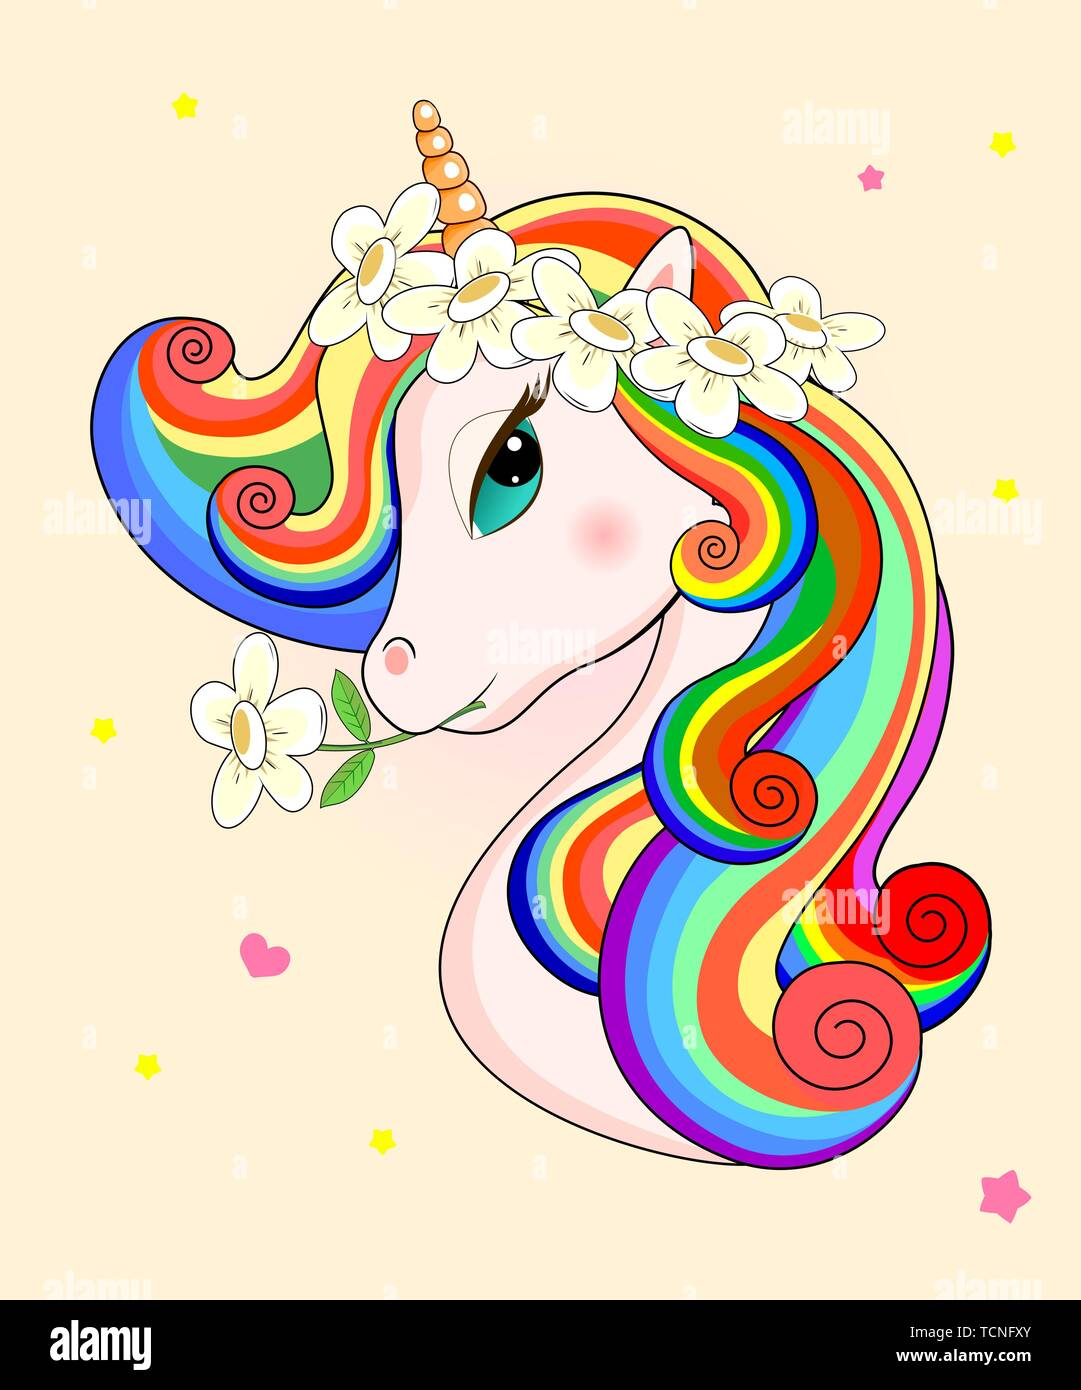 Beautiful unicorn with flowers on his head on a beige background. Head of a unicorn with a multi-colored mane. - Stock Vector